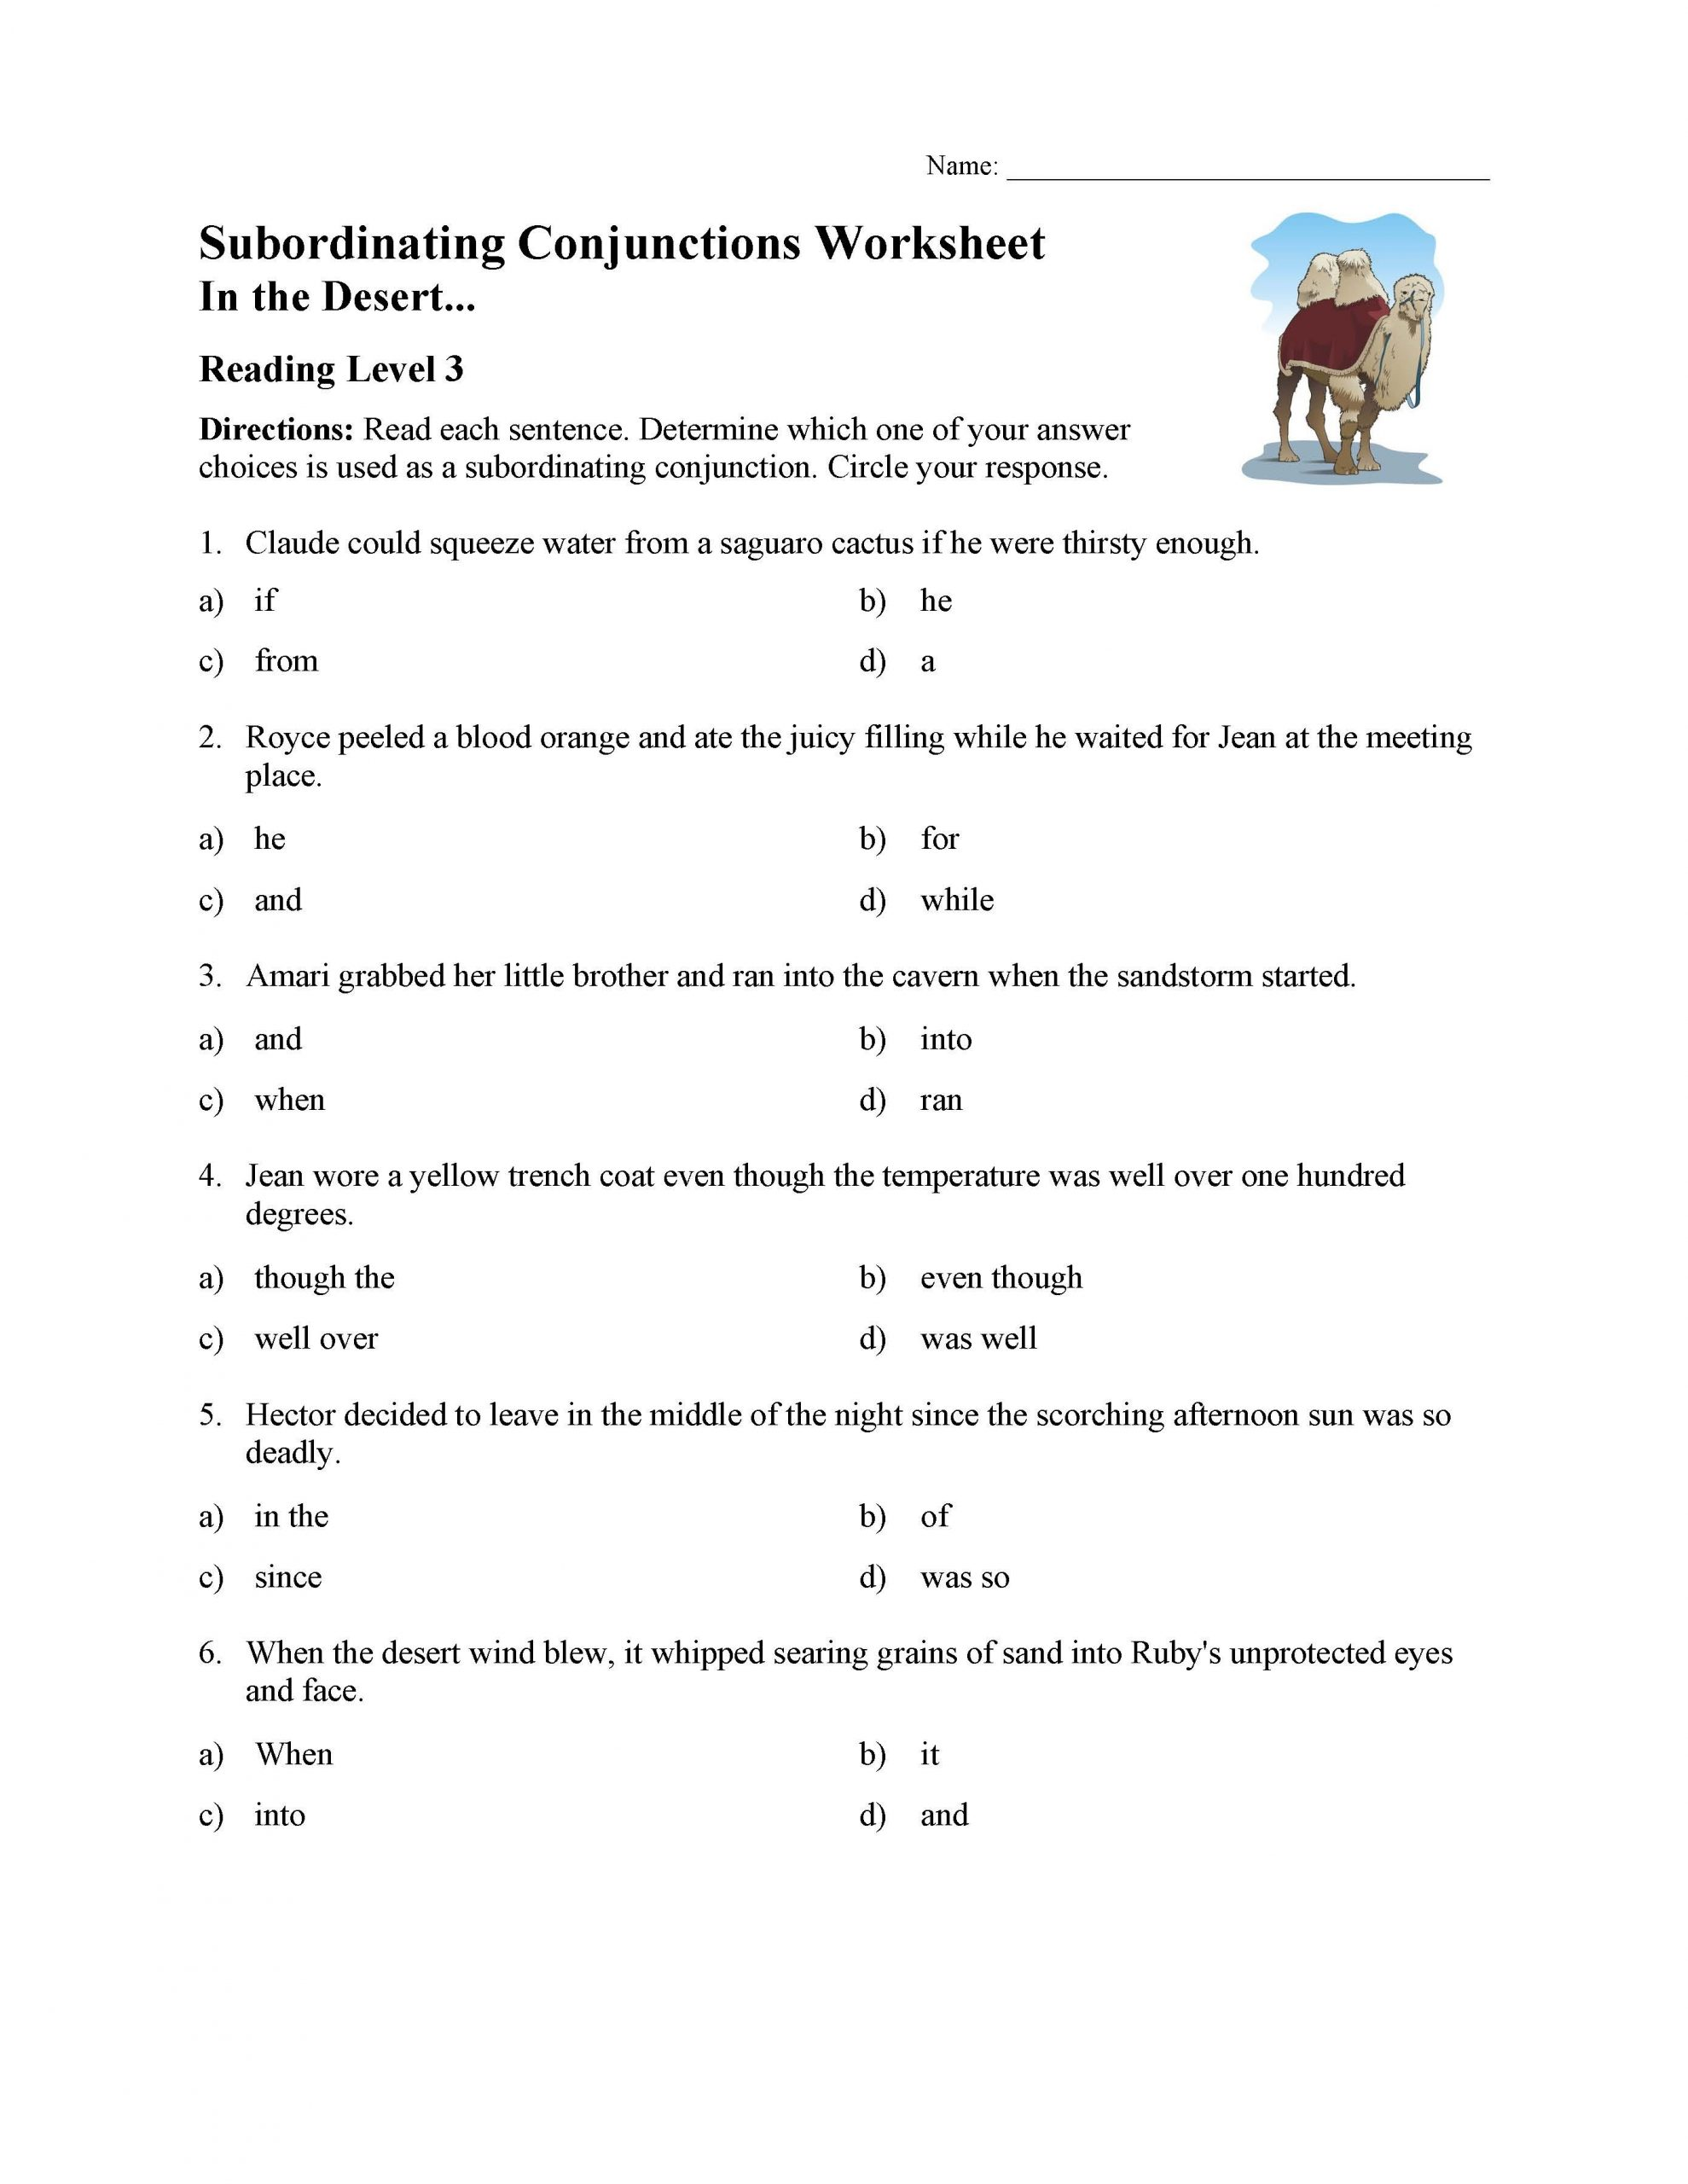 Conjunctions Worksheets for Grade 3 Subordinating Conjunctions Worksheet Reading Level 3